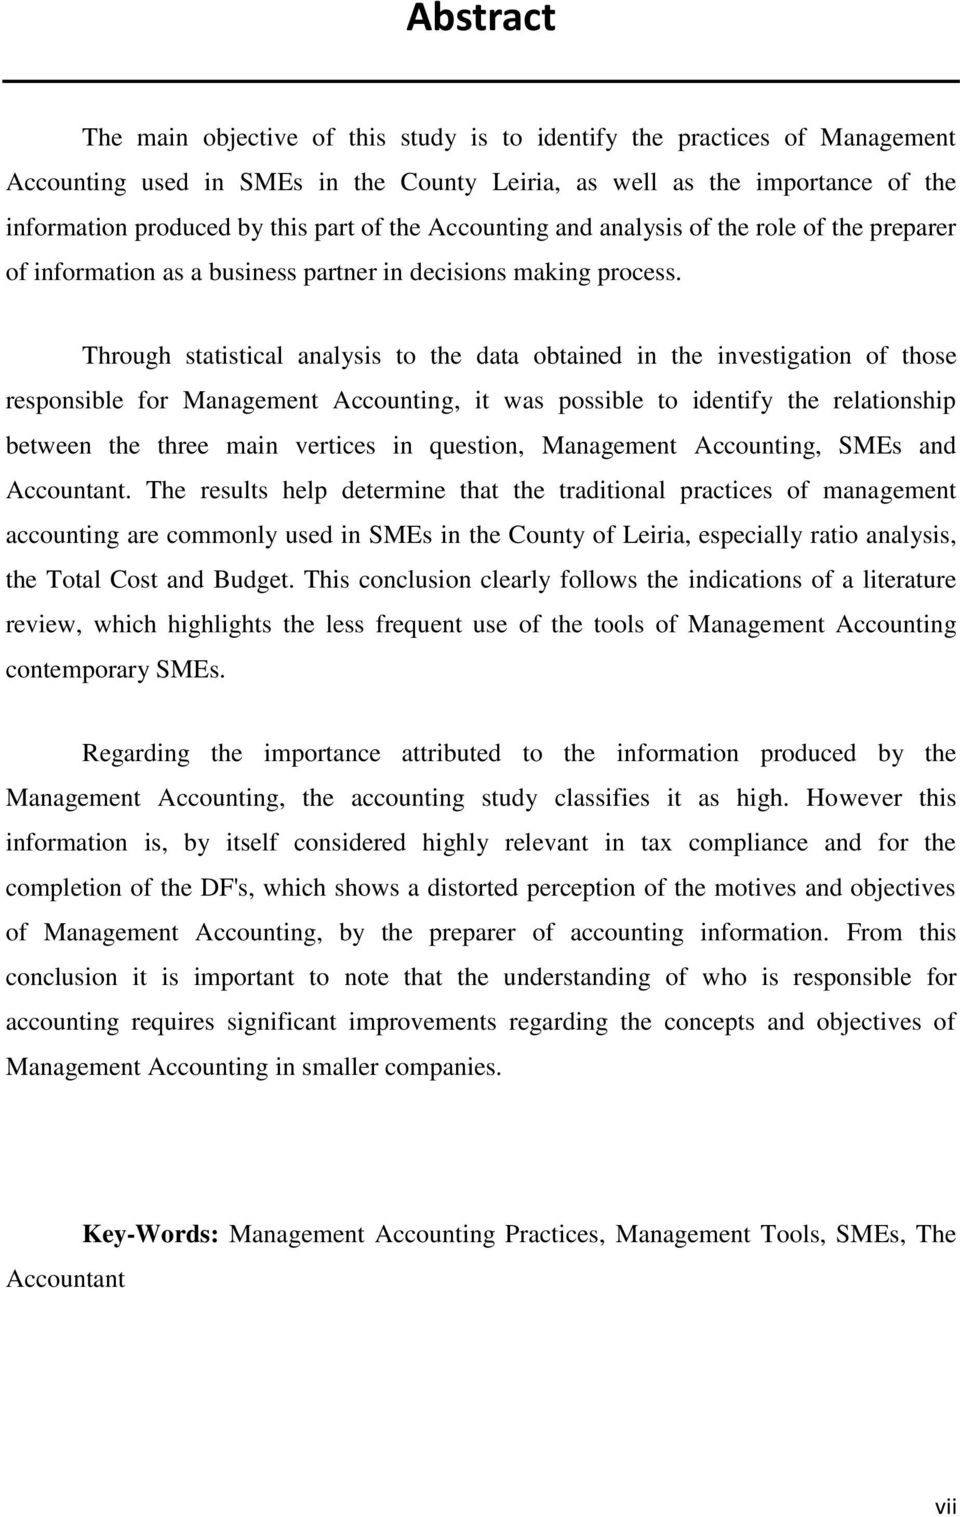 Through statistical analysis to the data obtained in the investigation of those responsible for Management Accounting, it was possible to identify the relationship between the three main vertices in